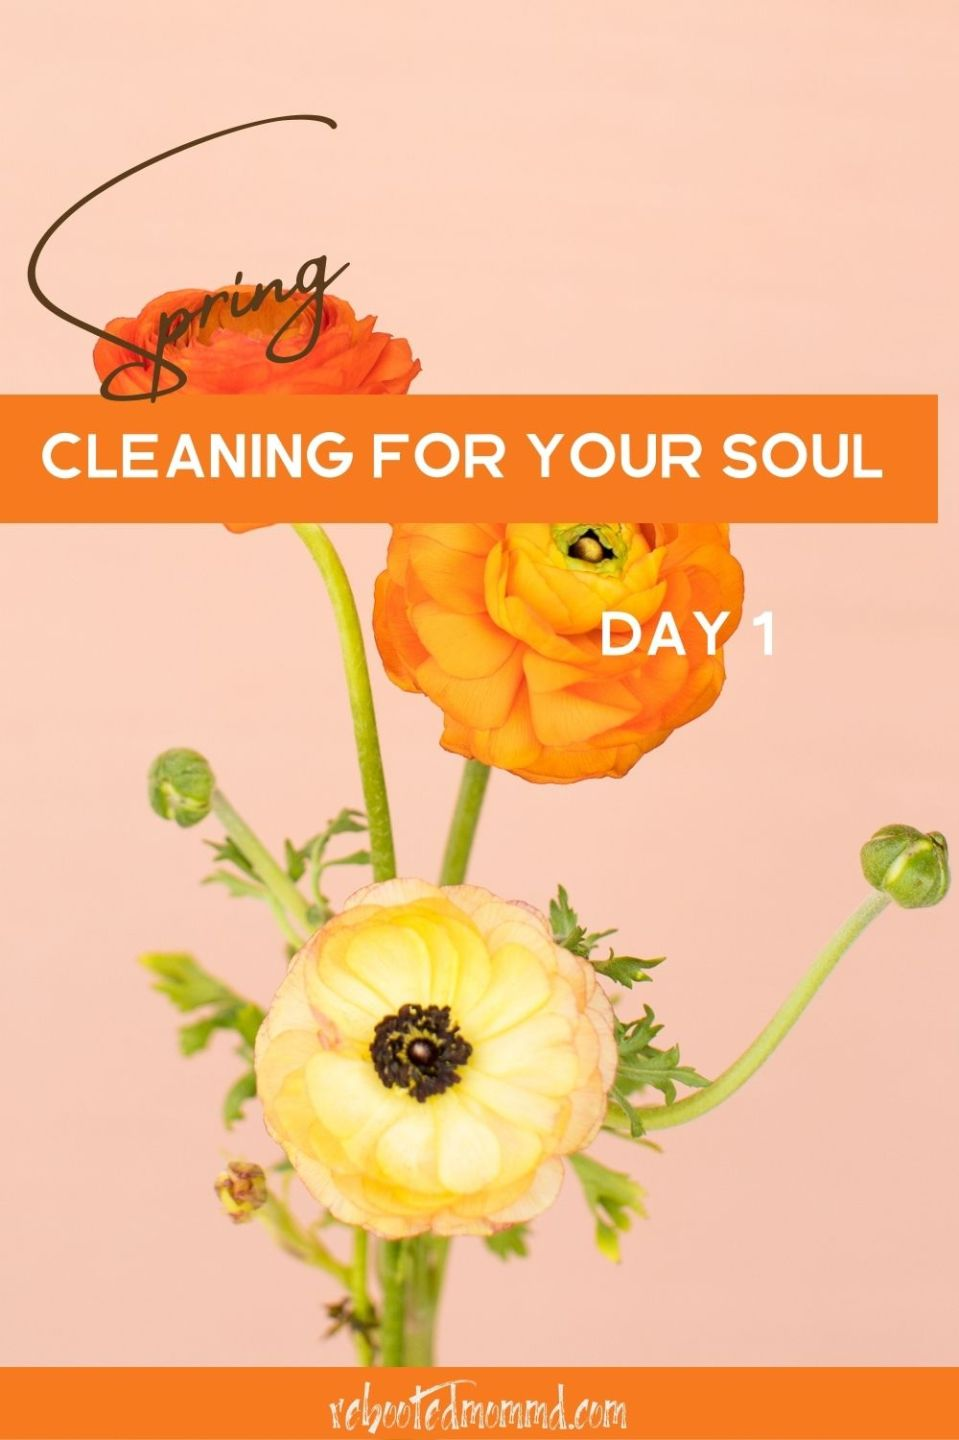 Spring Cleaning for Your Soul, Day 2: Lighten Up Your Outlook